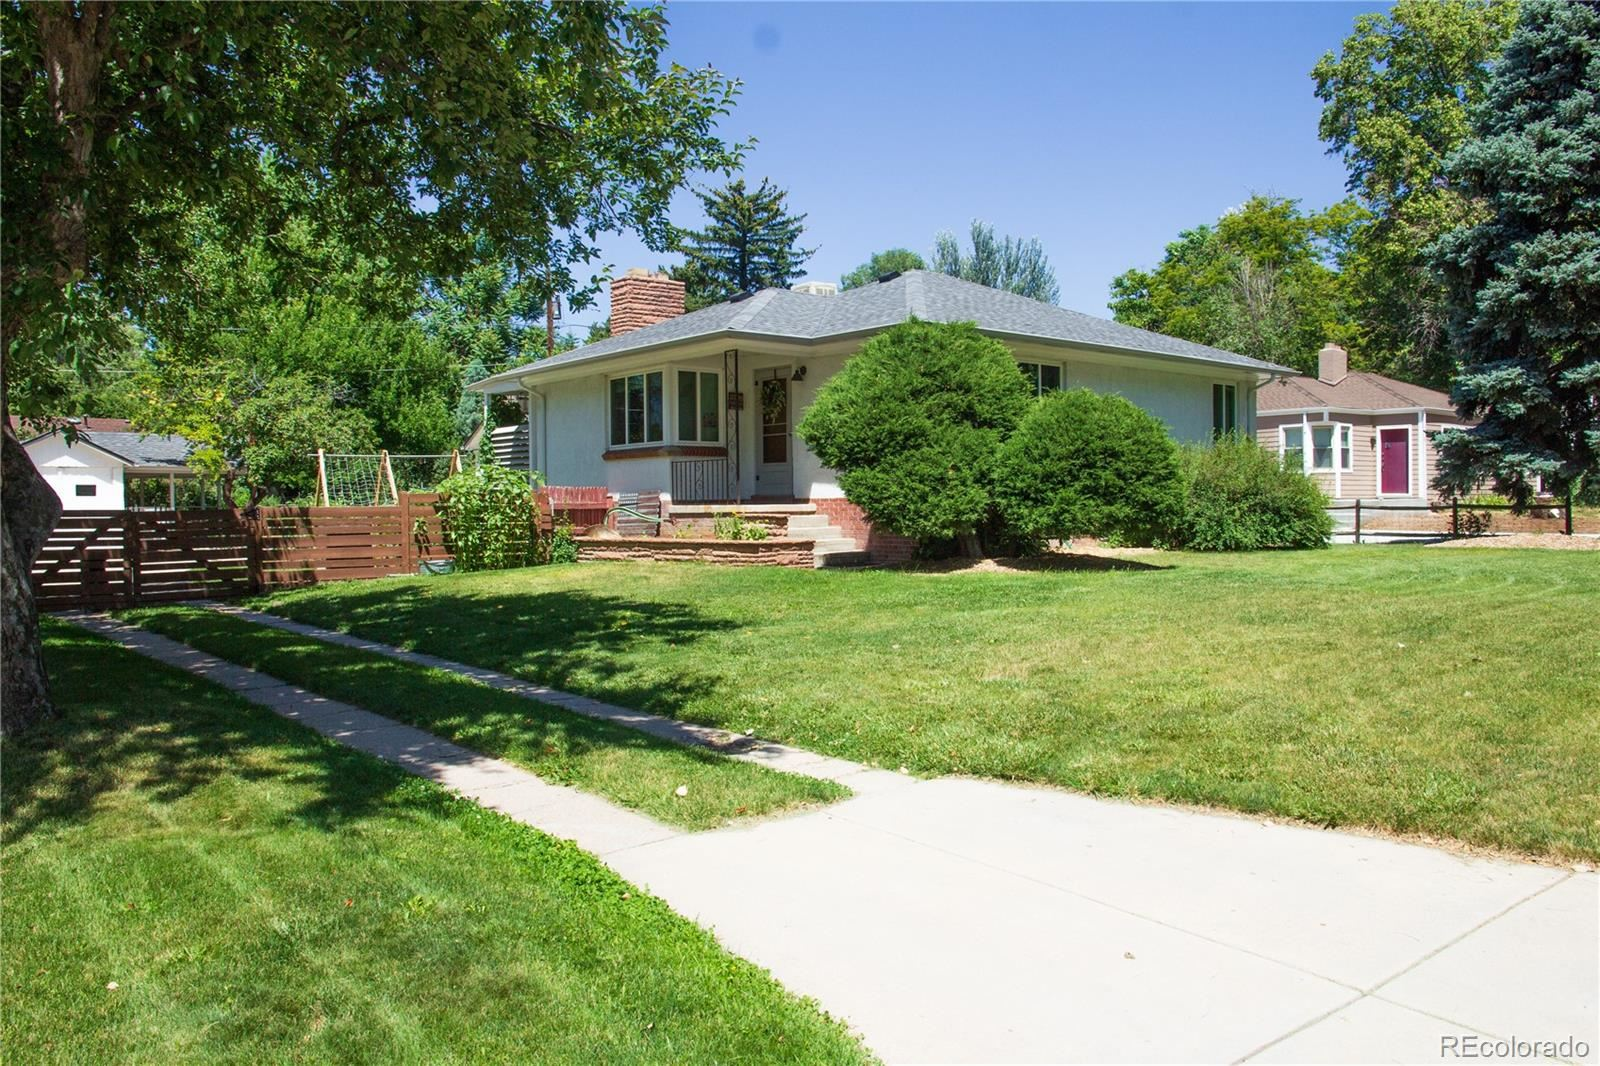 2785 Pierce Street, Wheat Ridge, CO 80214 - #: 6728353